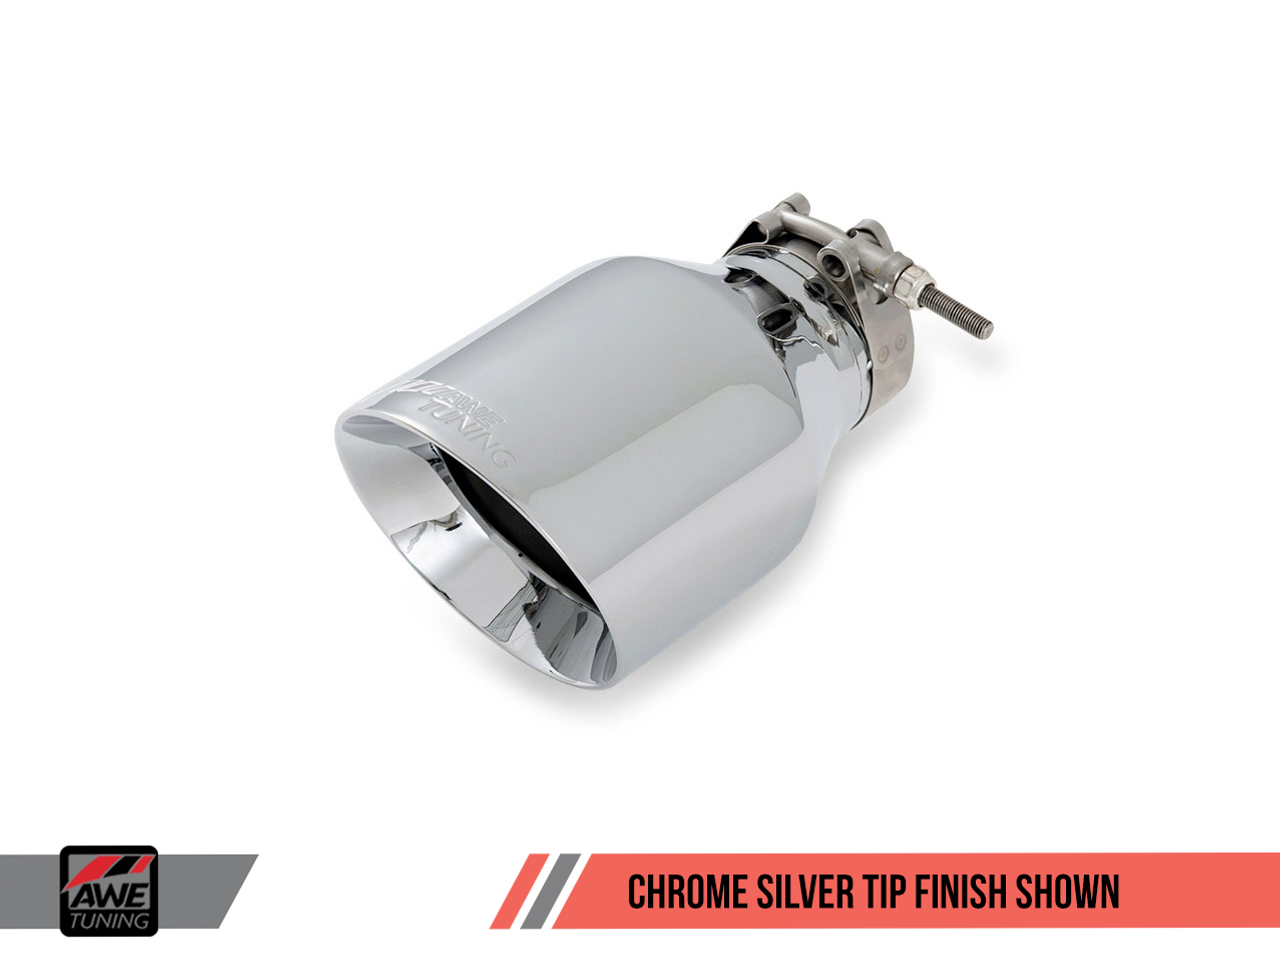 AWE Tuning - Chrome Silver Tailpipe